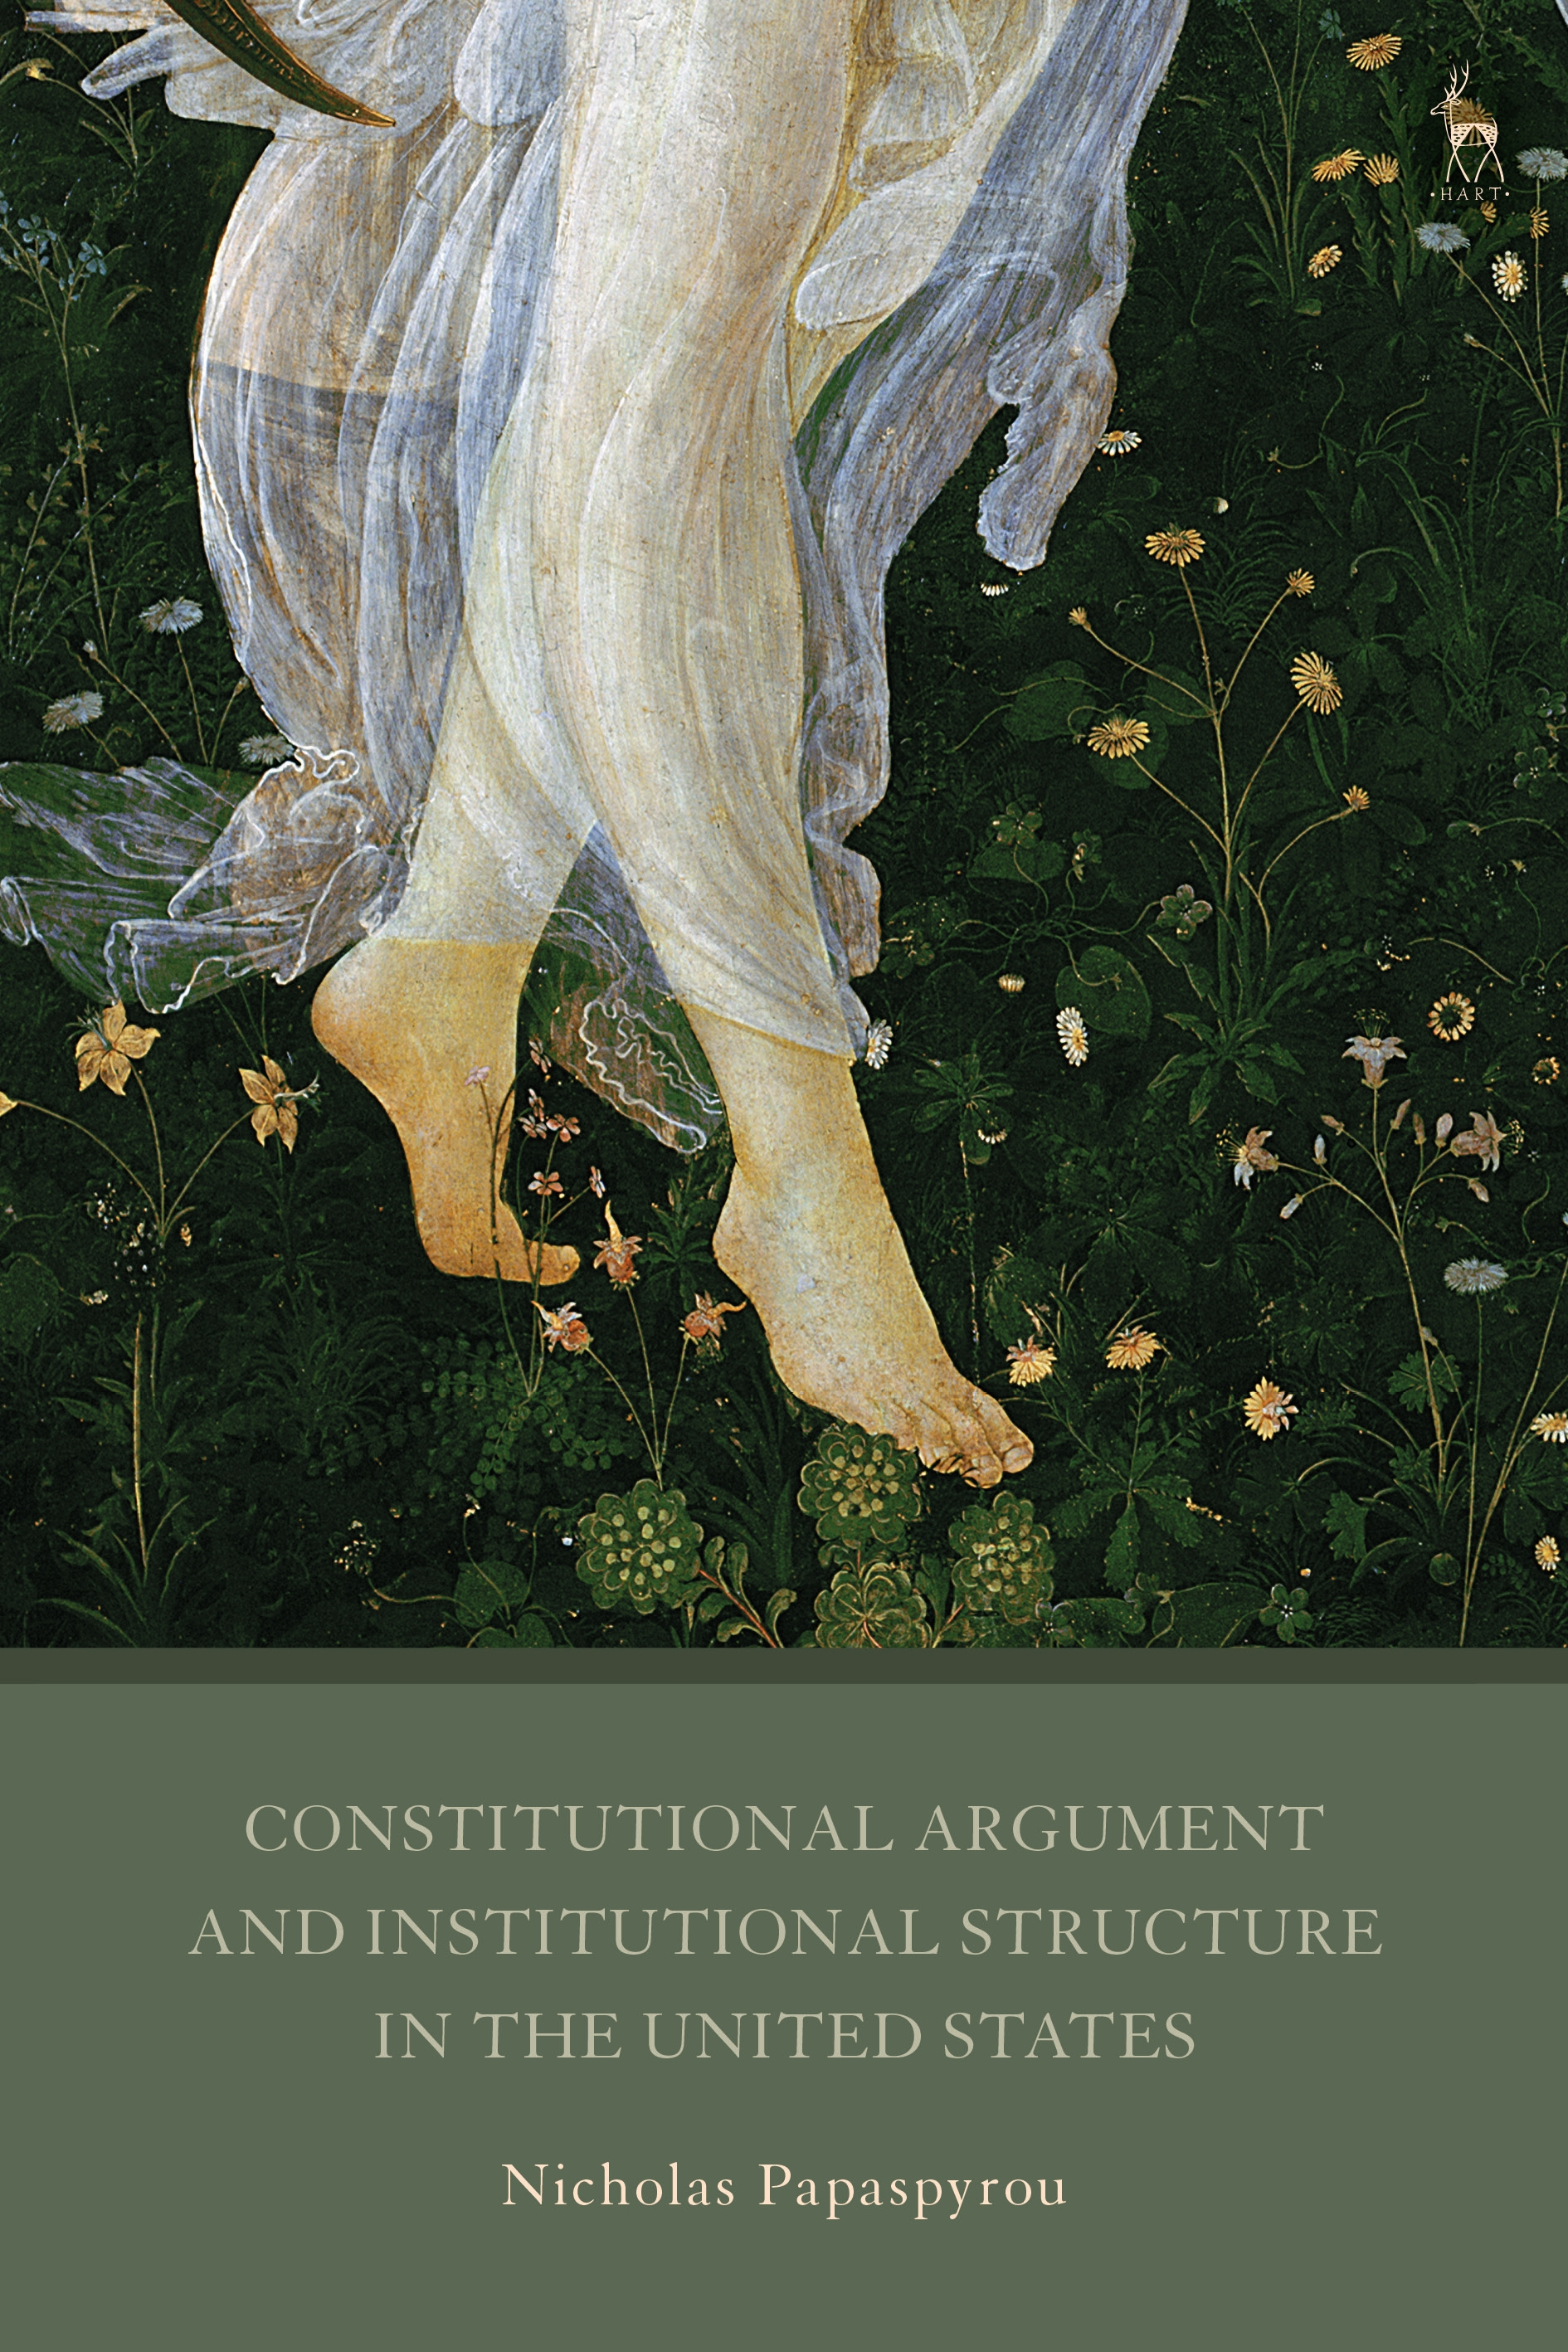 Constitutional Argument and Institutional Structure in the United States